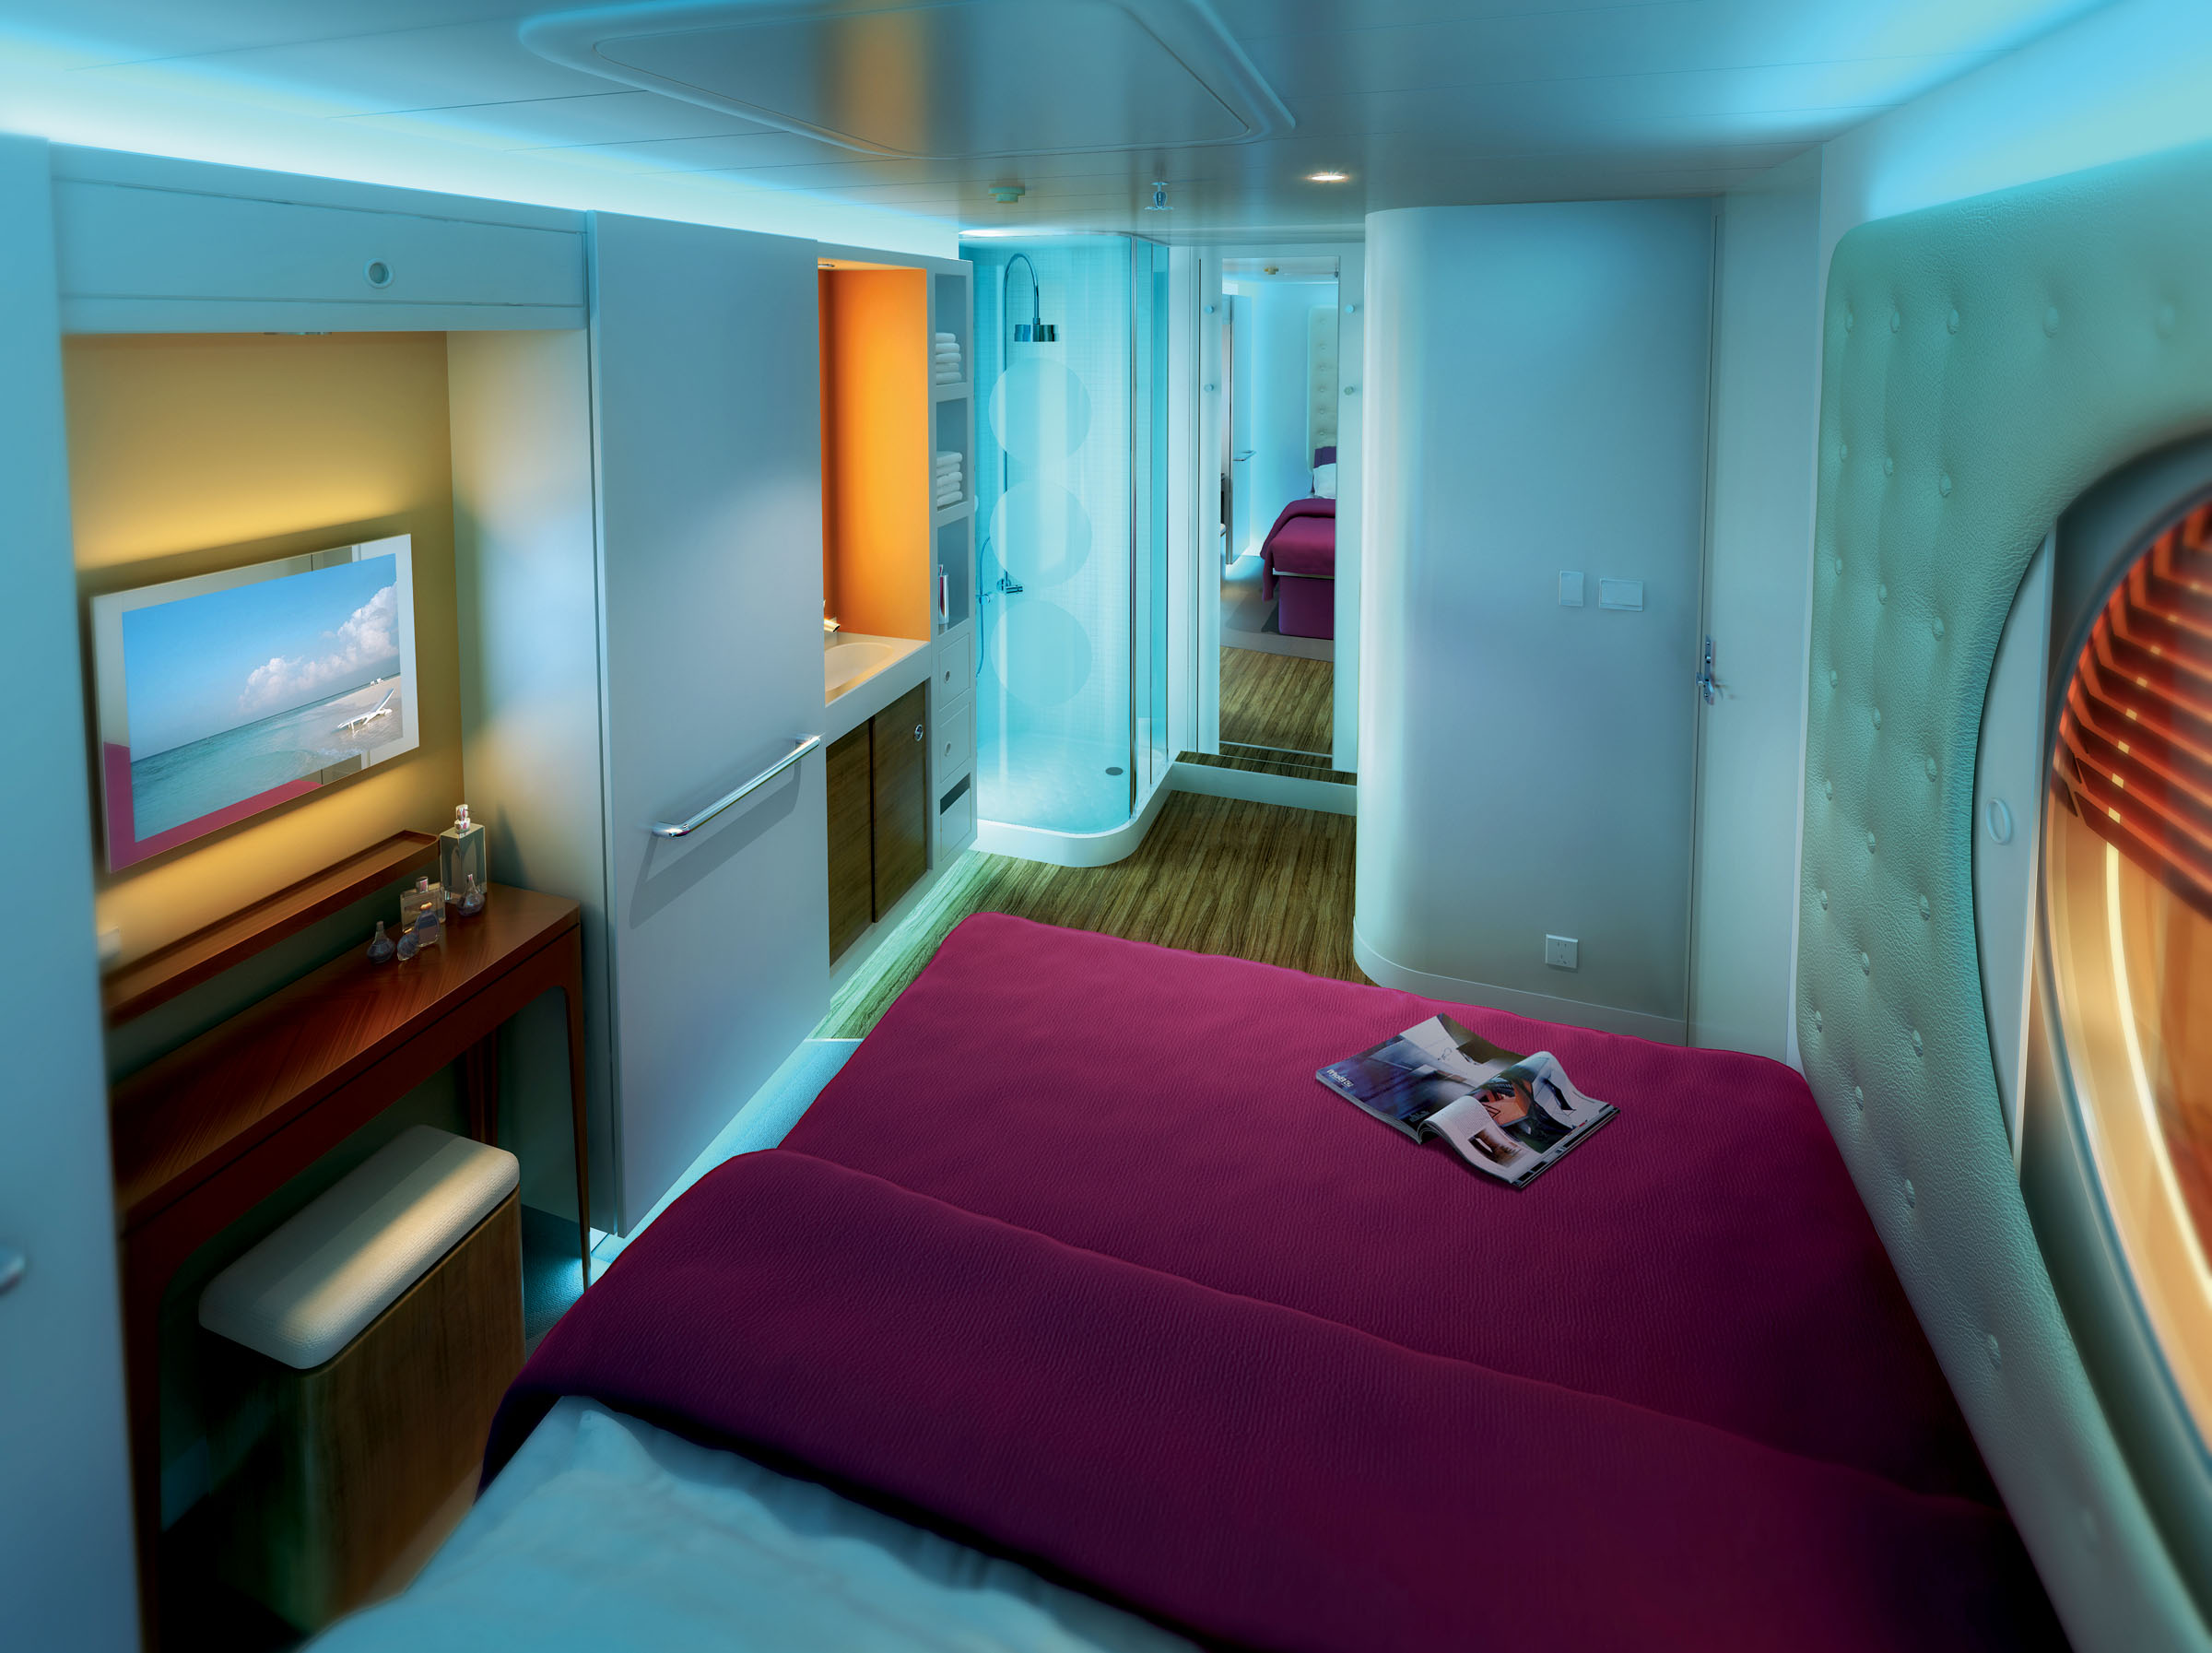 This rendering from Norwegian Cruise Line shows what a studio stateroom will look like on Norwegian Epic, a new ship scheduled to launch in June. Thes...